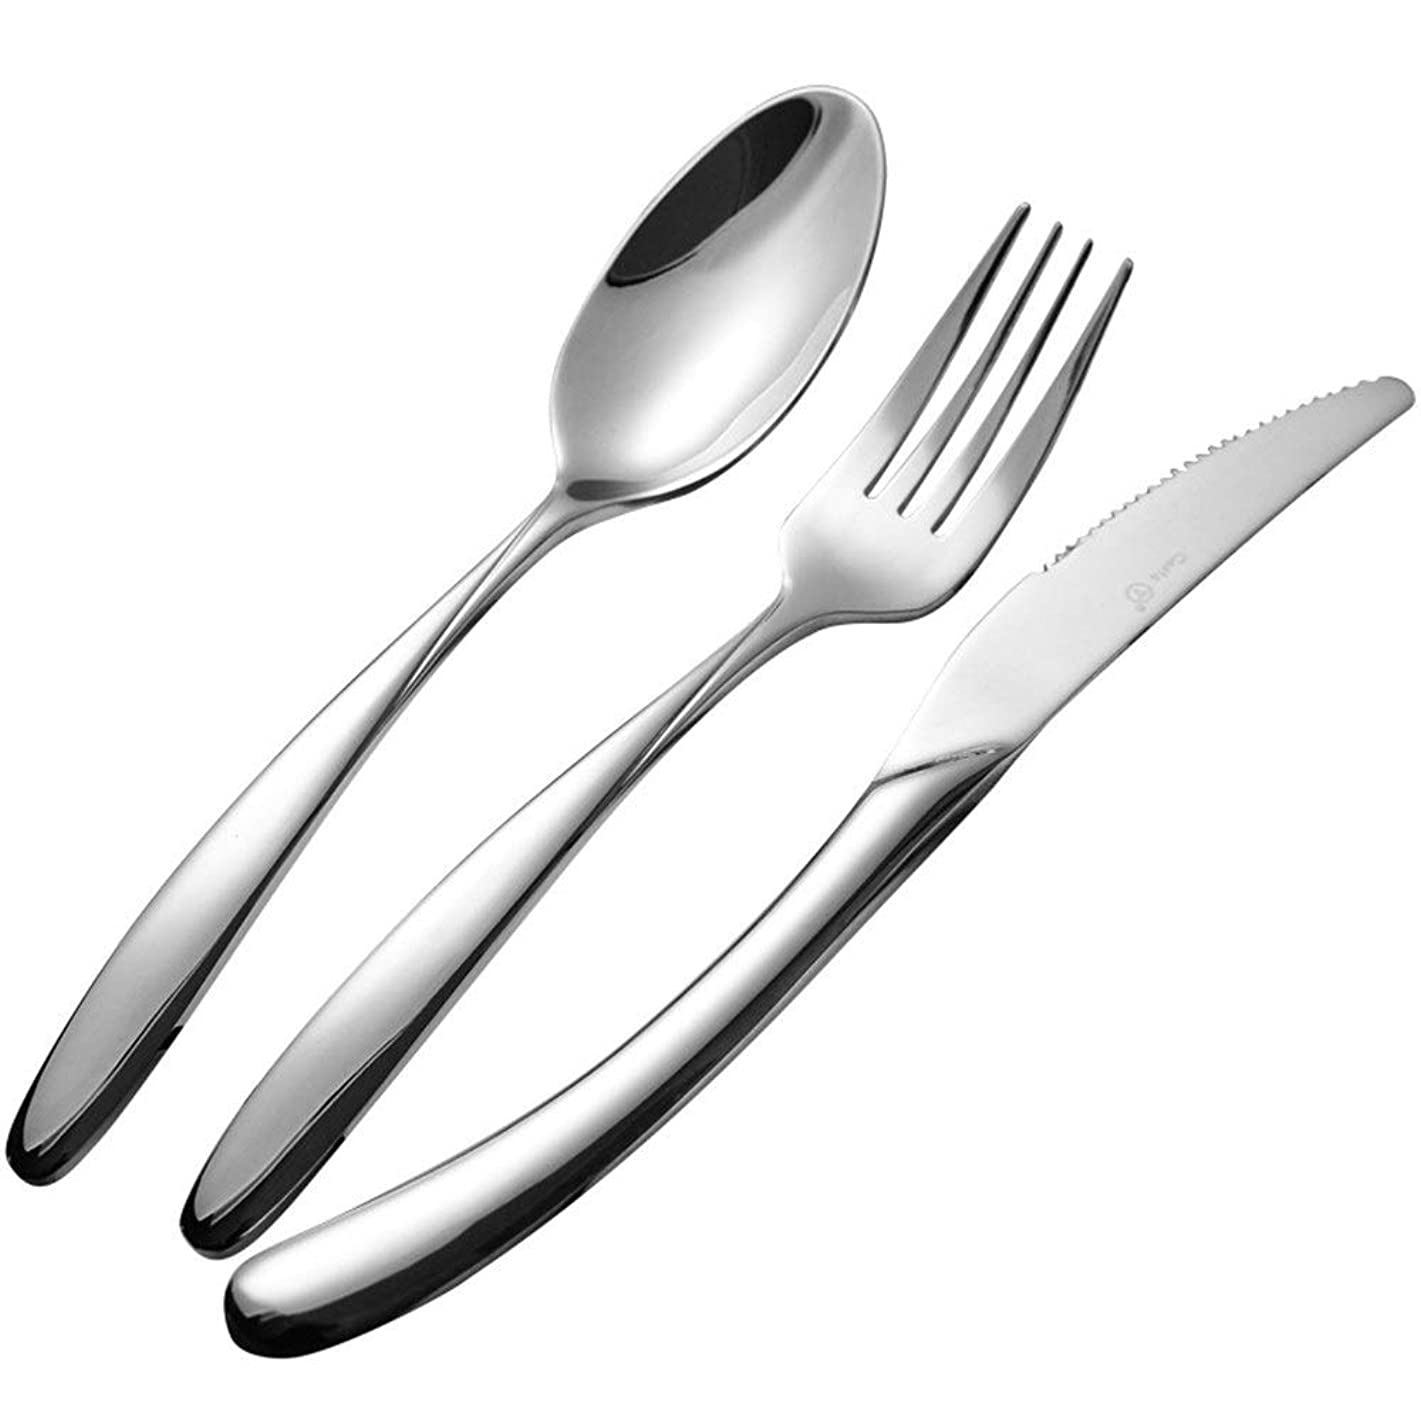 Pro-BikeUS Stainless Steel Knife And Fork Western Tableware High-grade Thickening Hotel Steak Knife And Fork Spoon (Color : ONE SET)